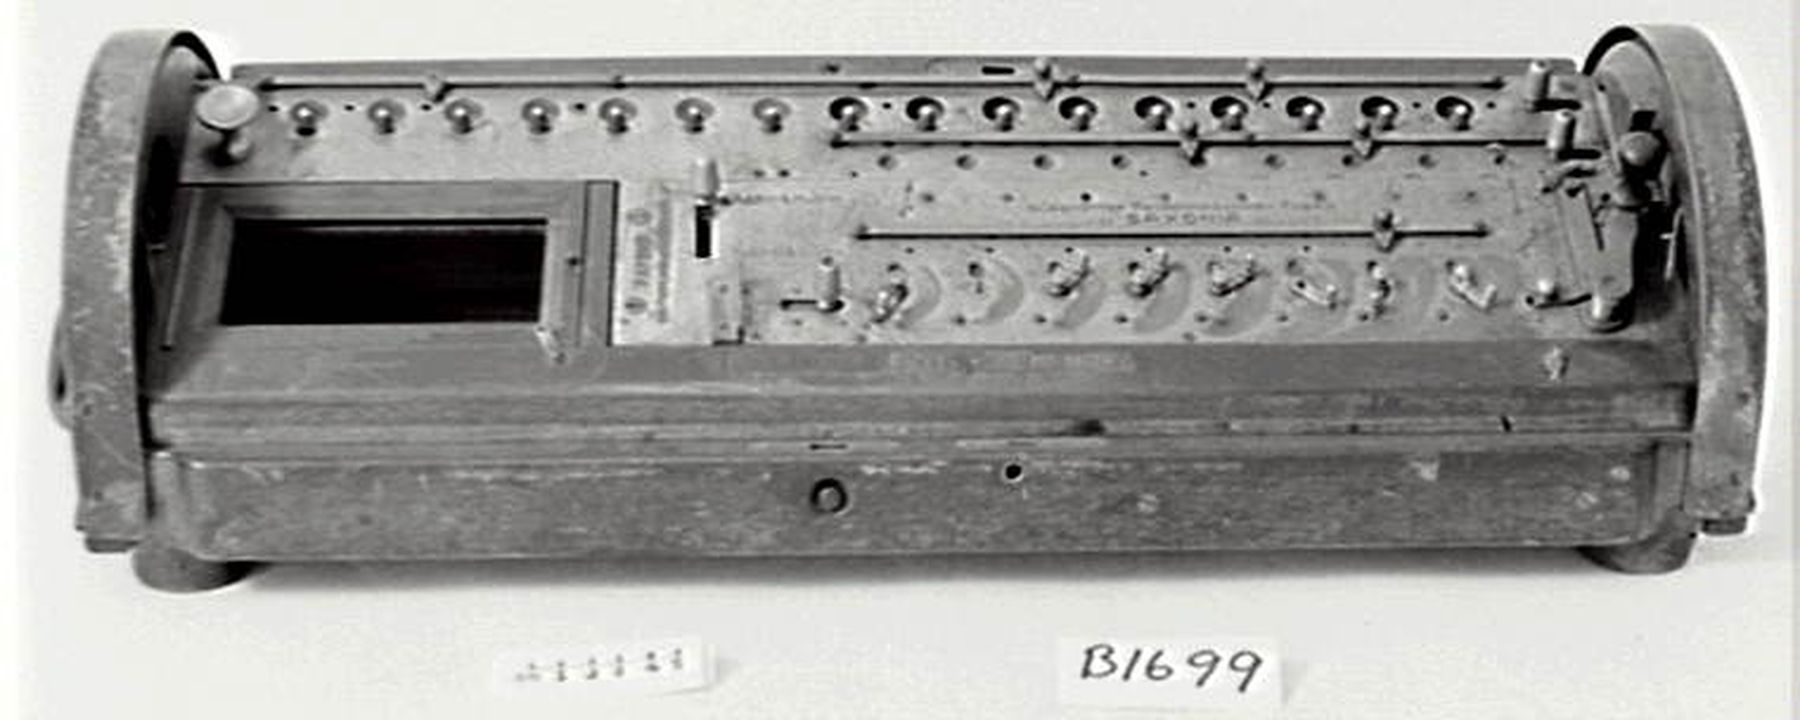 B1699 Mechanical calculator, 'Saxonia', wood / brass, made by Glashutter Rechenmaschinen-Fabrik, Saxony, Germany, possibly 1880s. Click to enlarge.